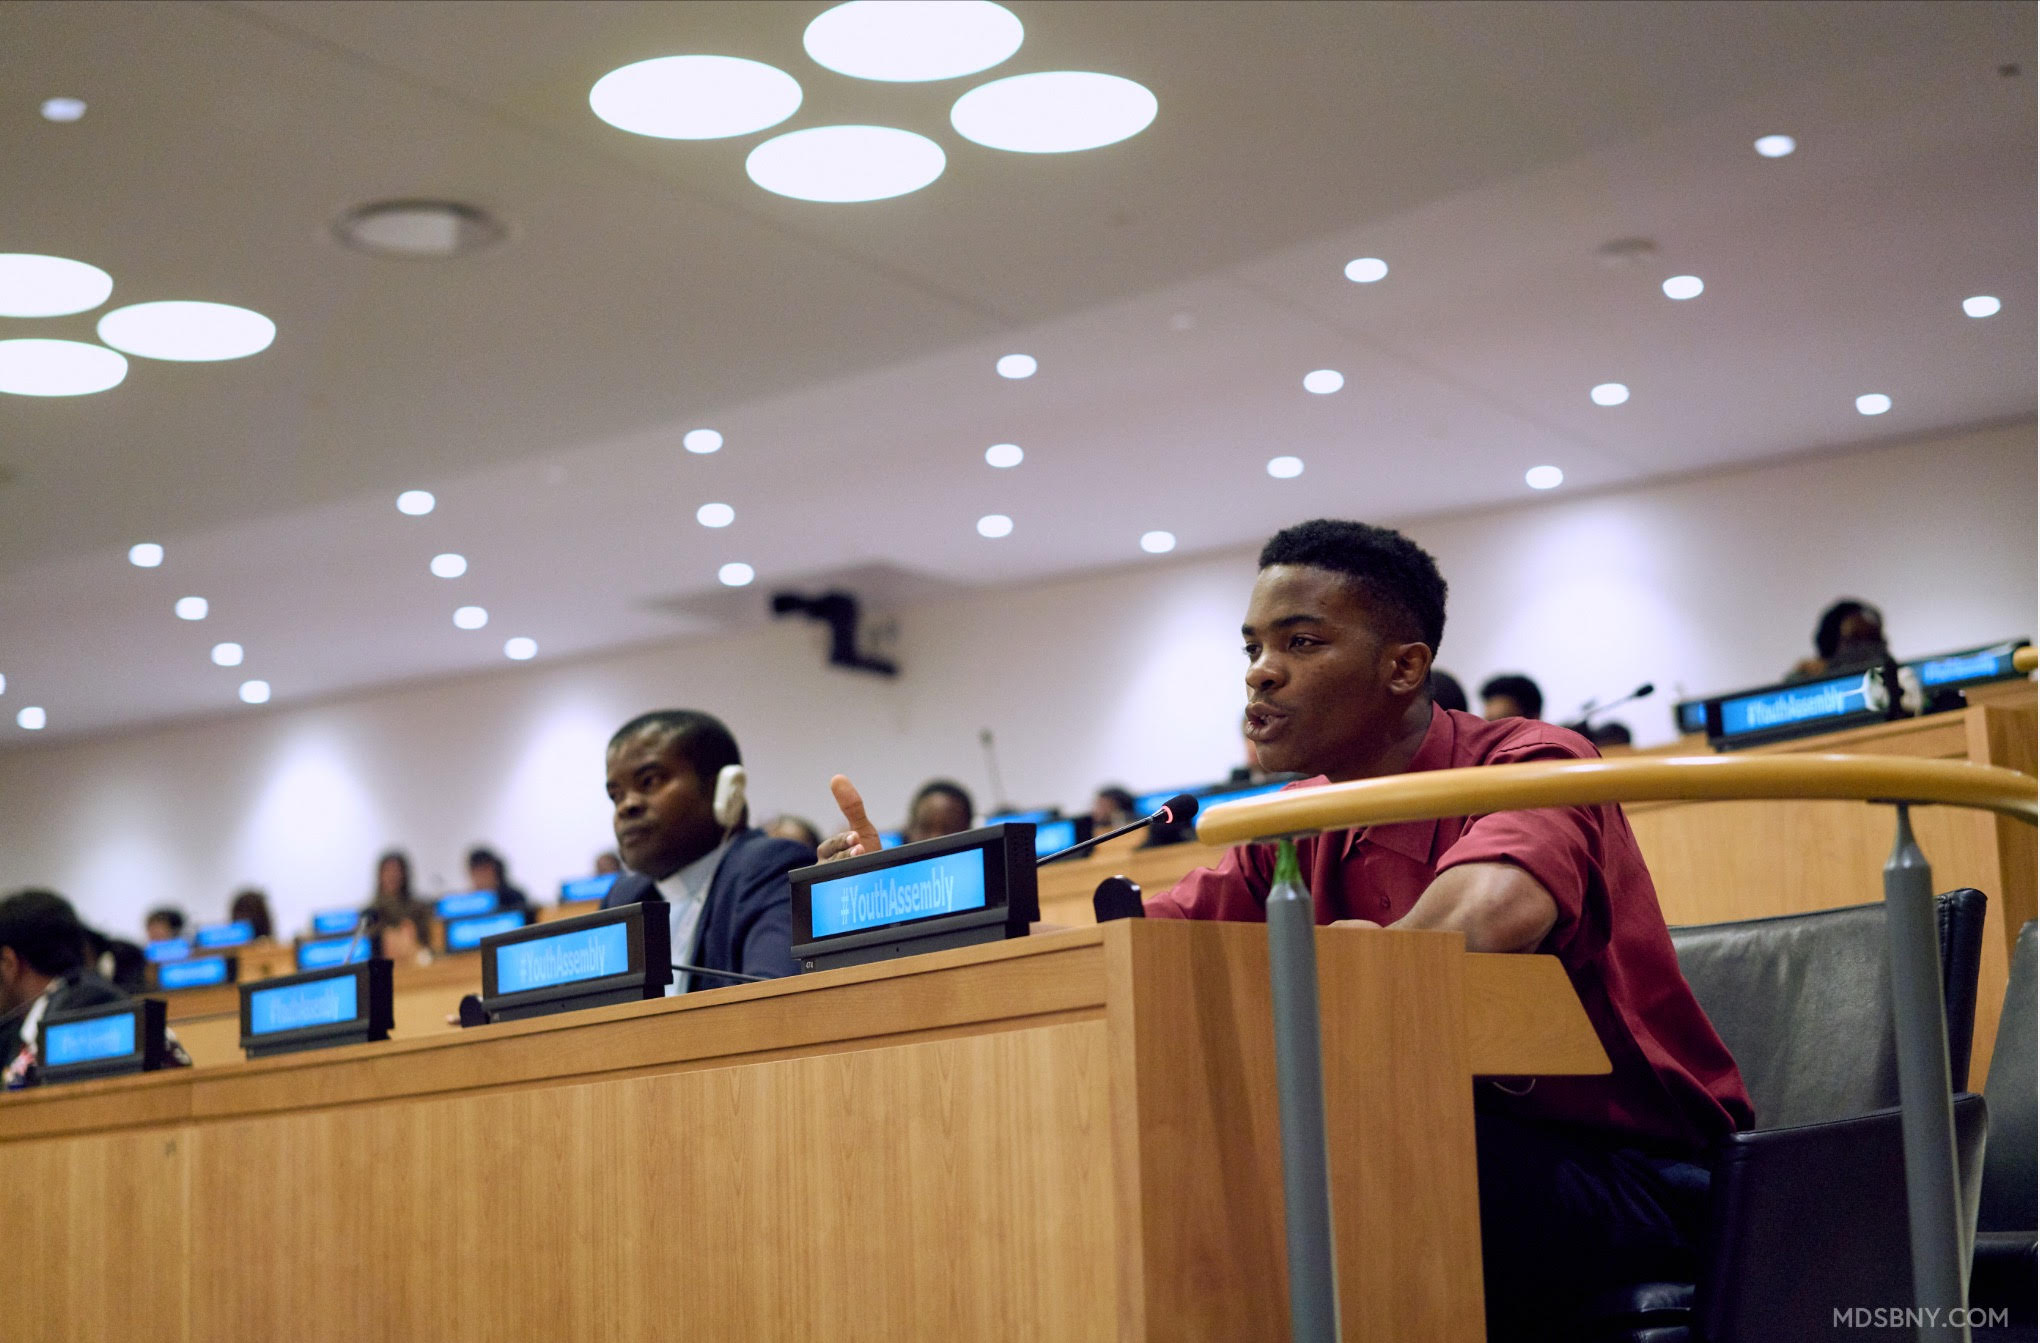 Kennedy Ekezie speaking at the Youth Assembly at the United Nations Credit: Mdsbny.com